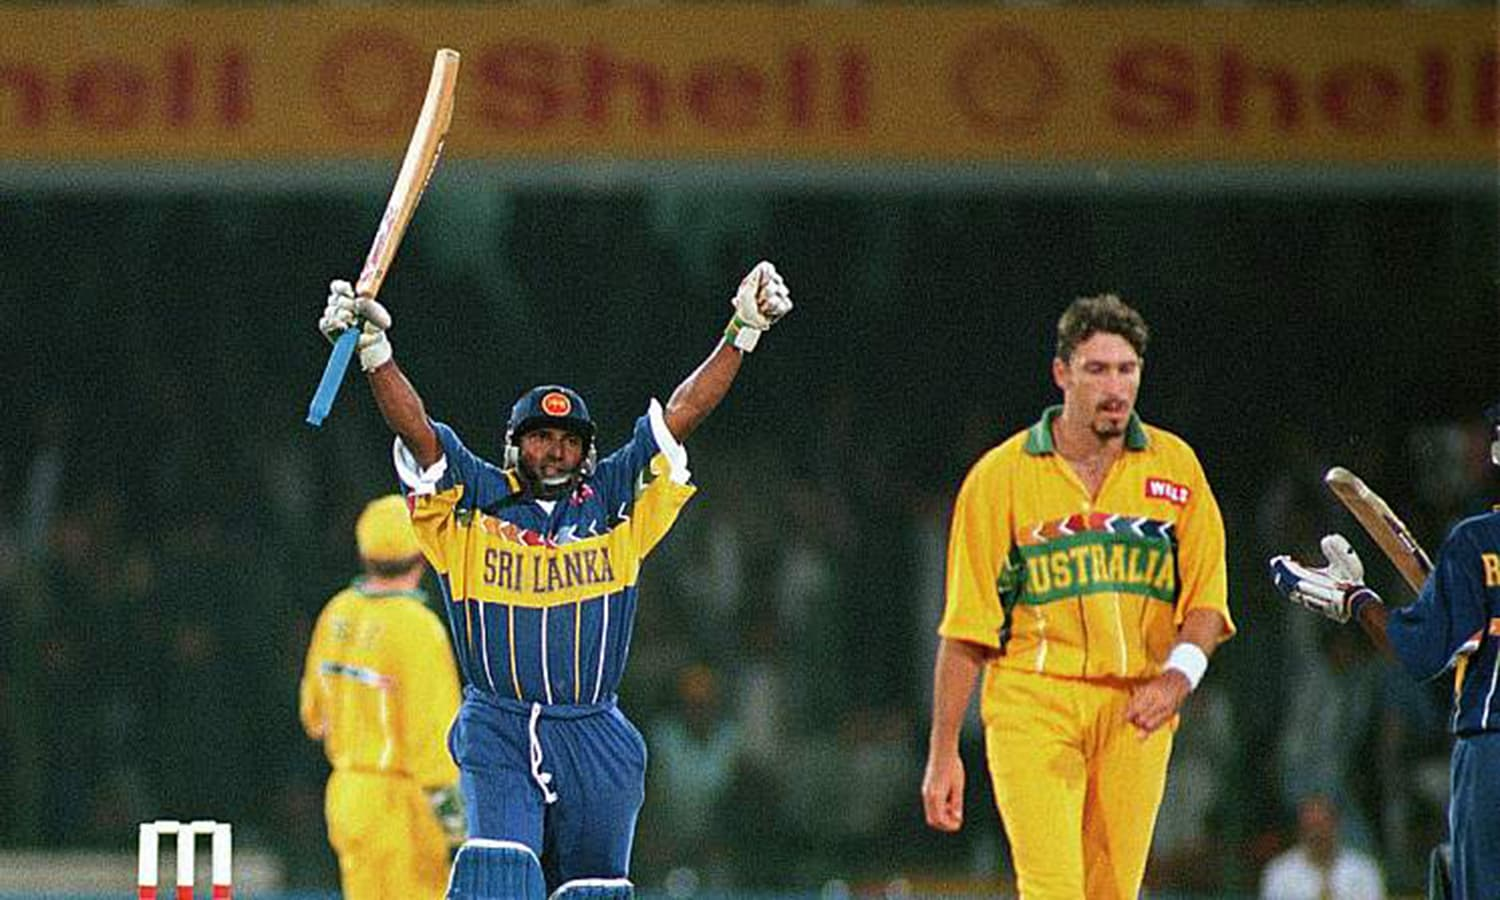 The 1996 Cricket World Cup final between Australia and Sri Lanka at the Gaddafi Stadium. (Pic: Cricbuzz)